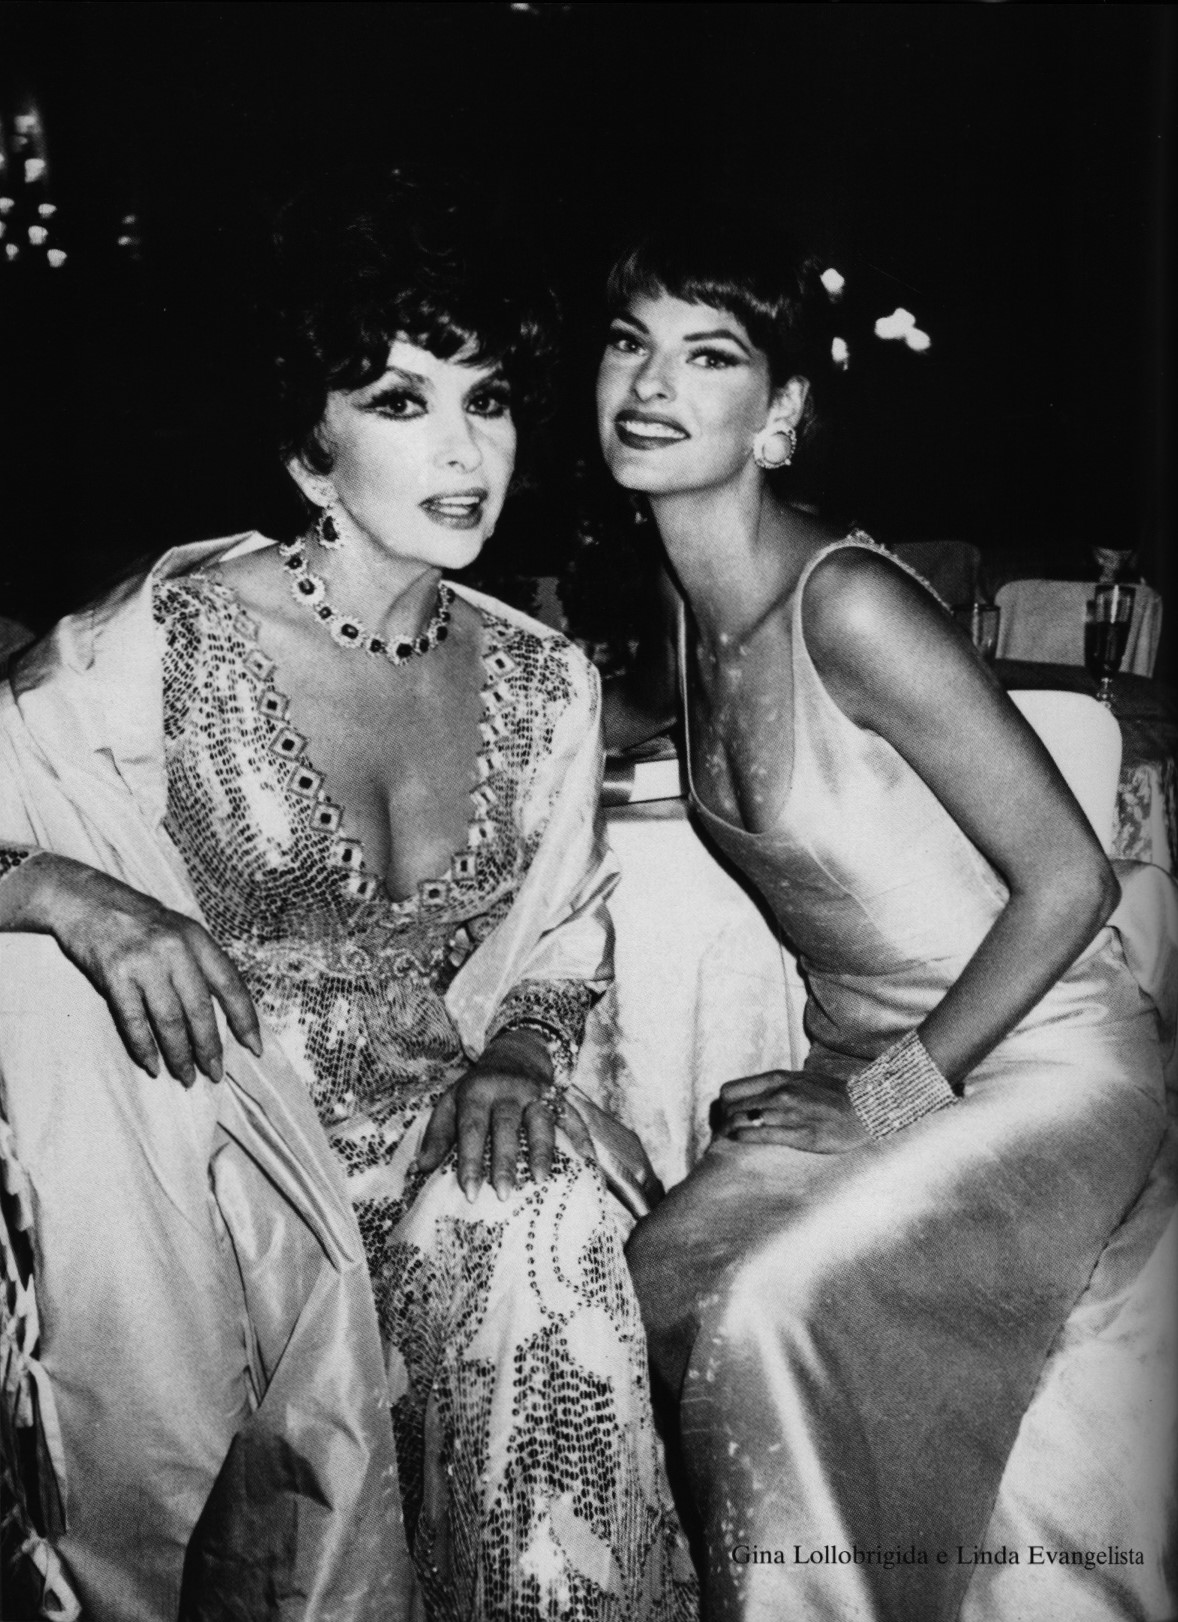 gina lolllobrigida and linda evangelista photography roxanne lowit vogue gioiello september 2000